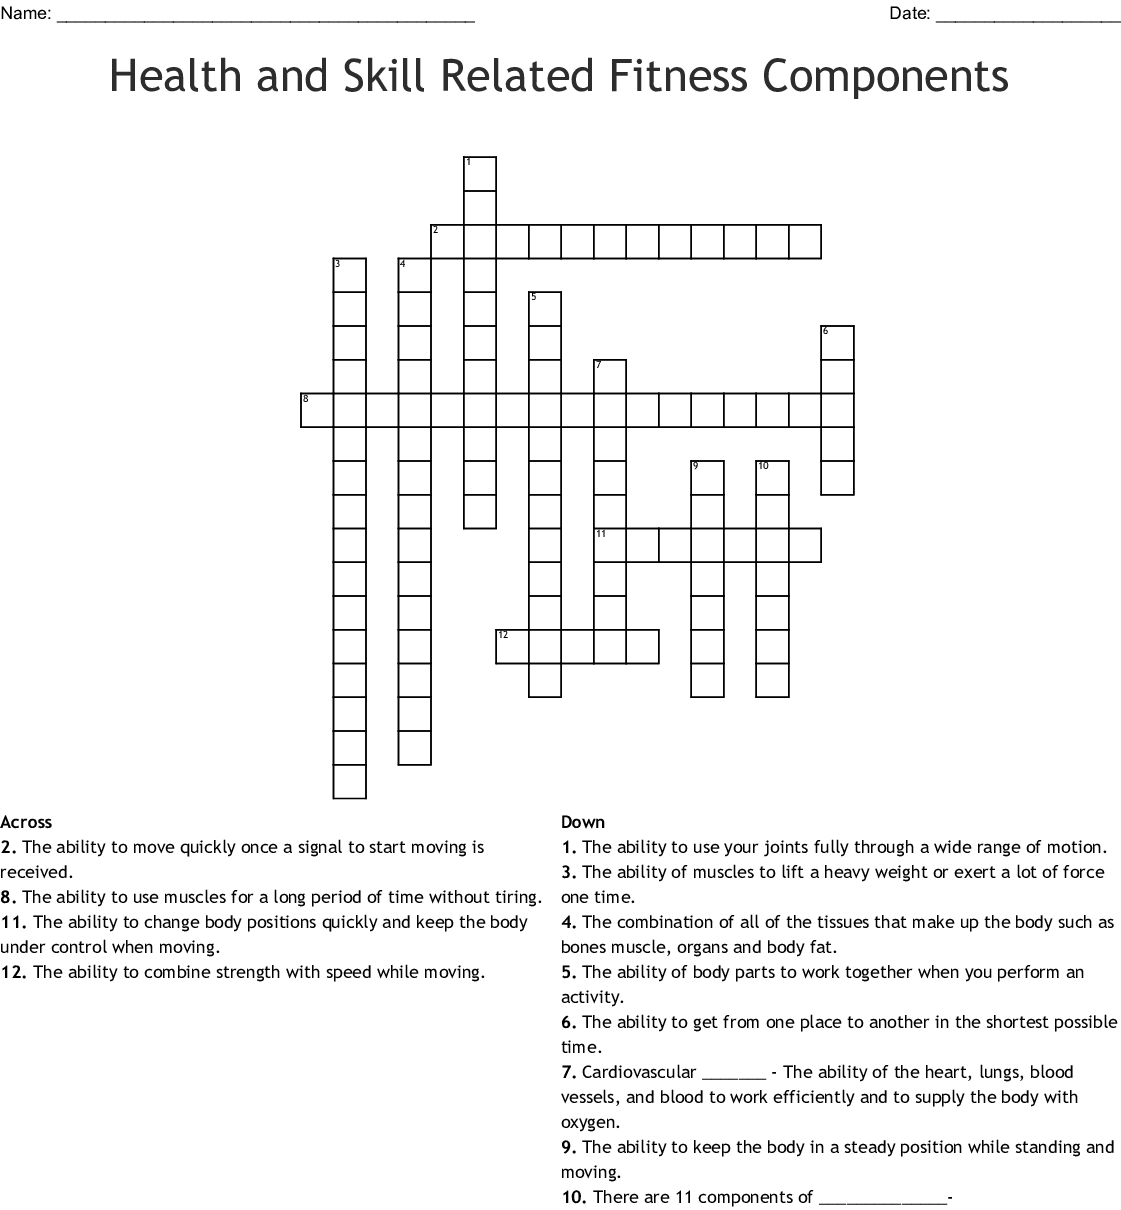 Health And Skill Related Fitness Components Crossword